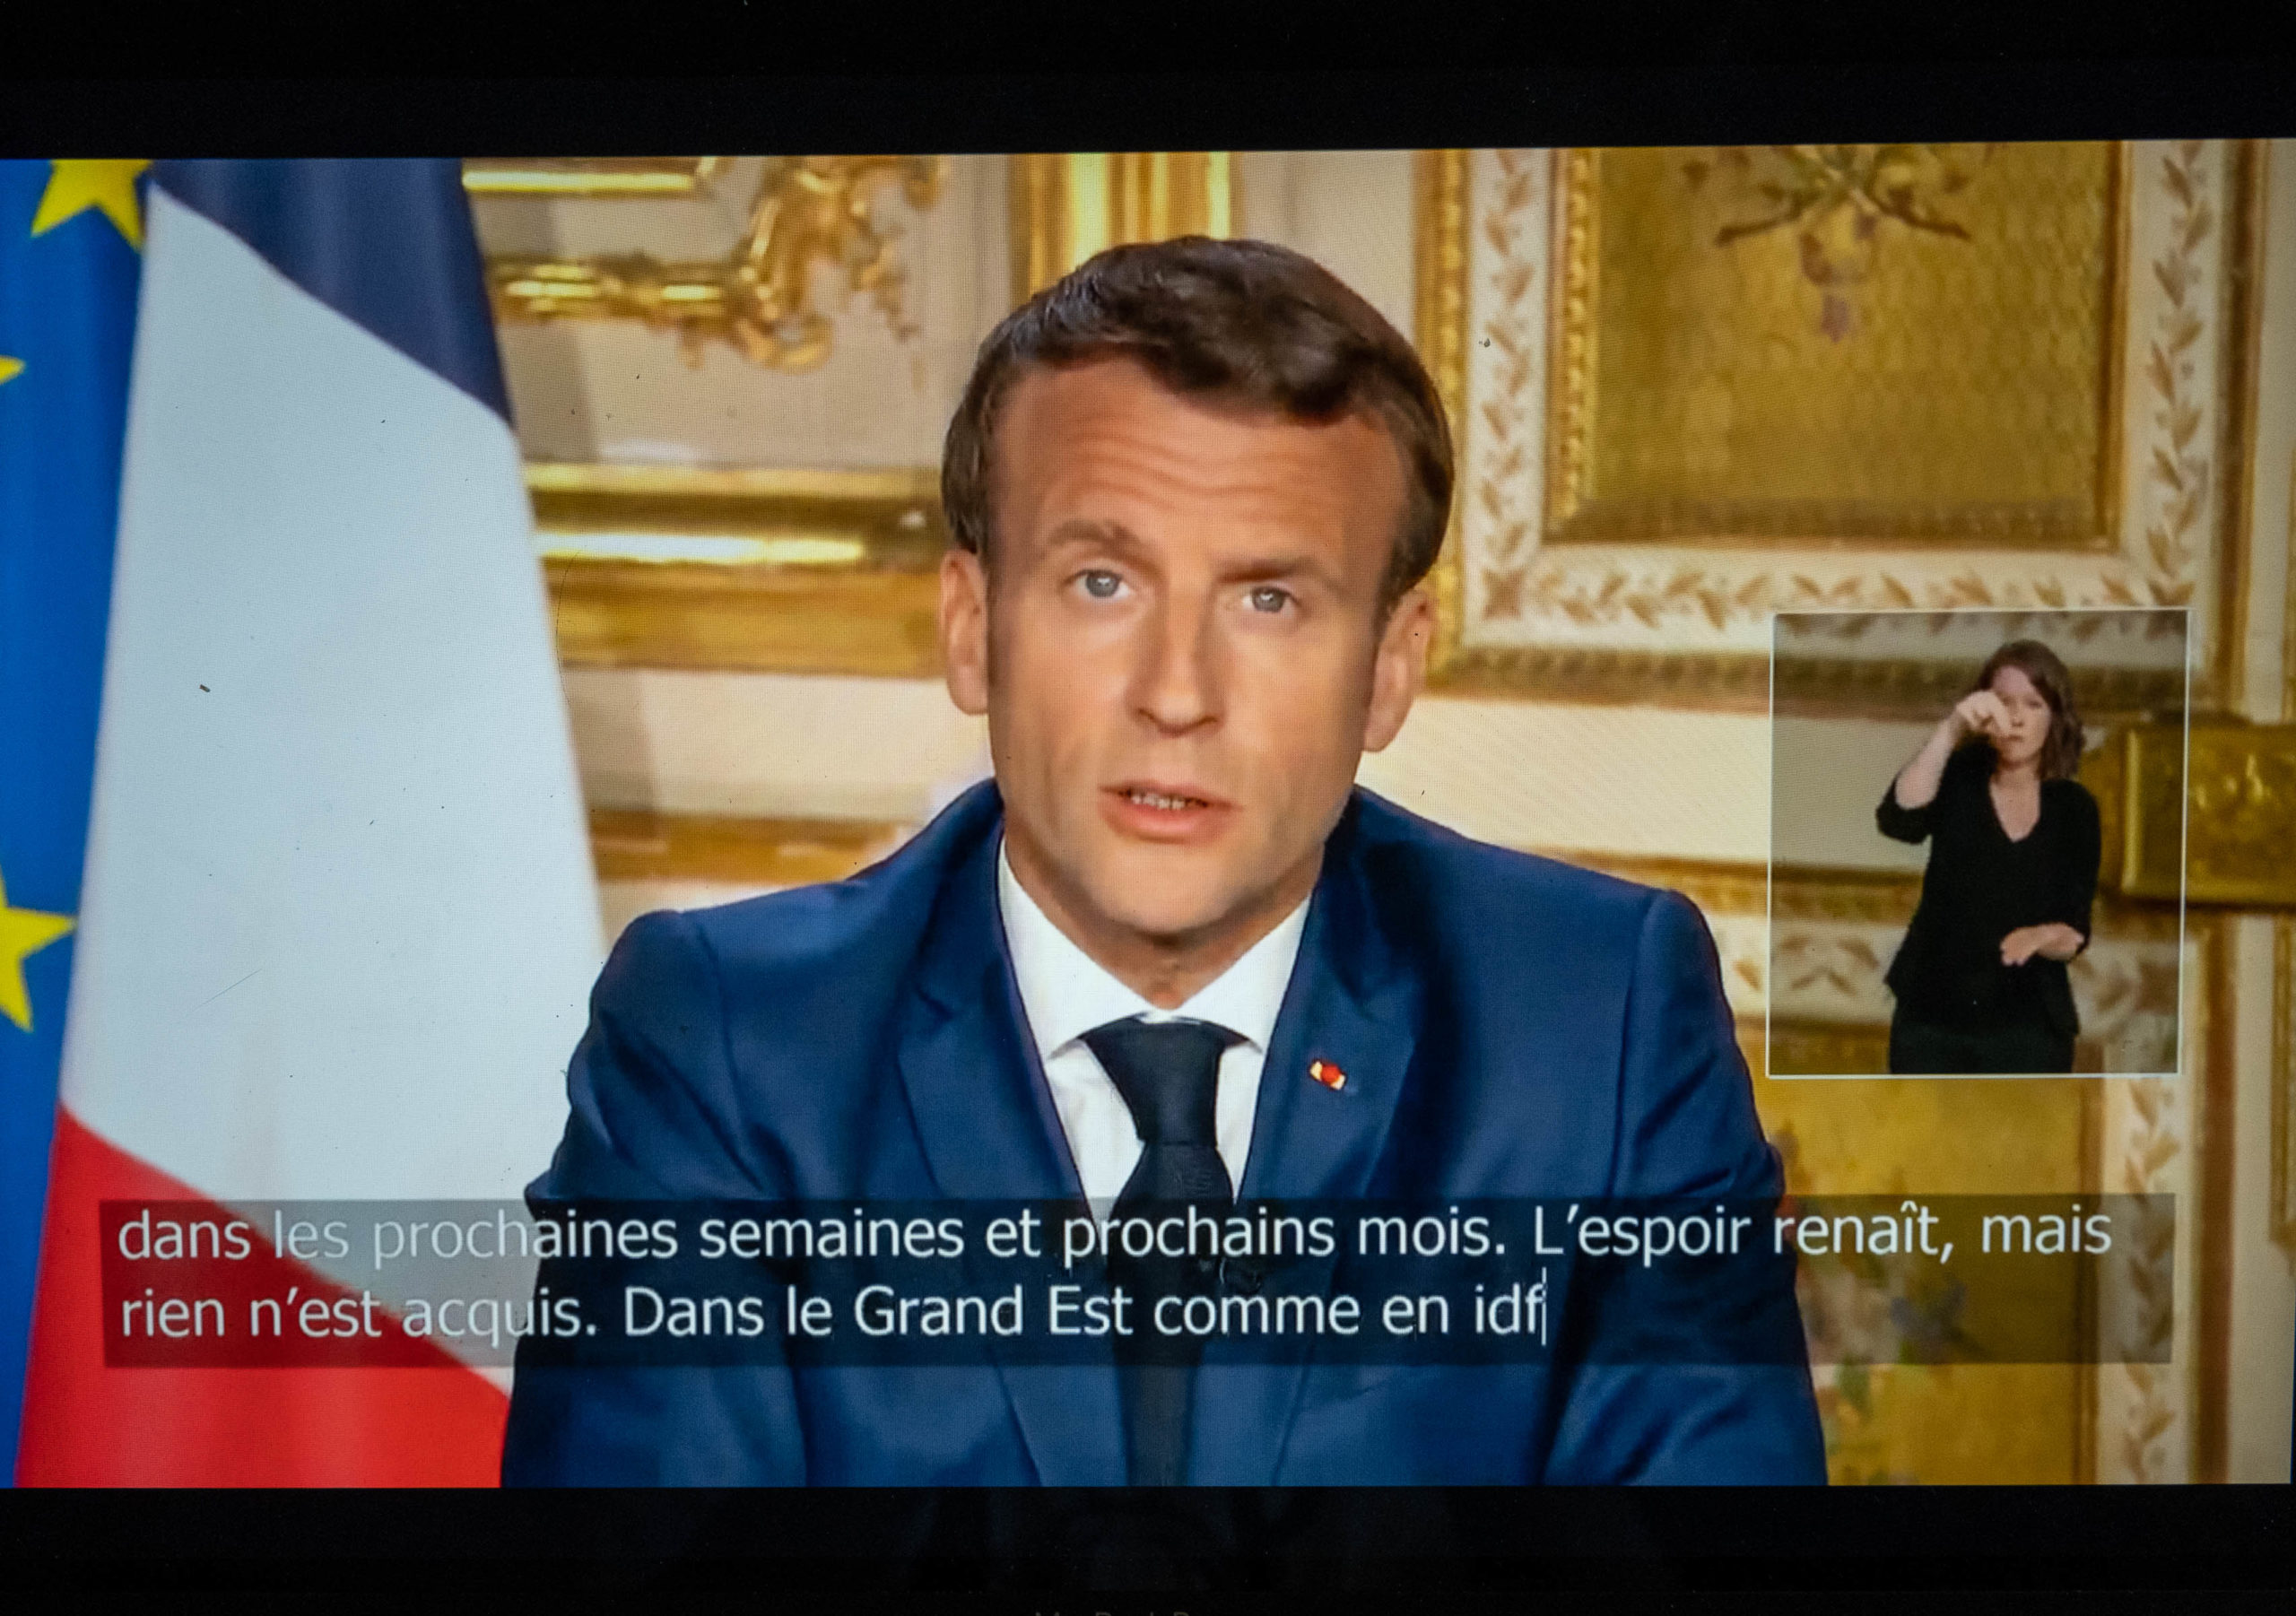 President Emmanuel Macron addresses the French.13 April 2020. Le president Emmanuel Macron s'adresse au Francais.13 avril 2020.